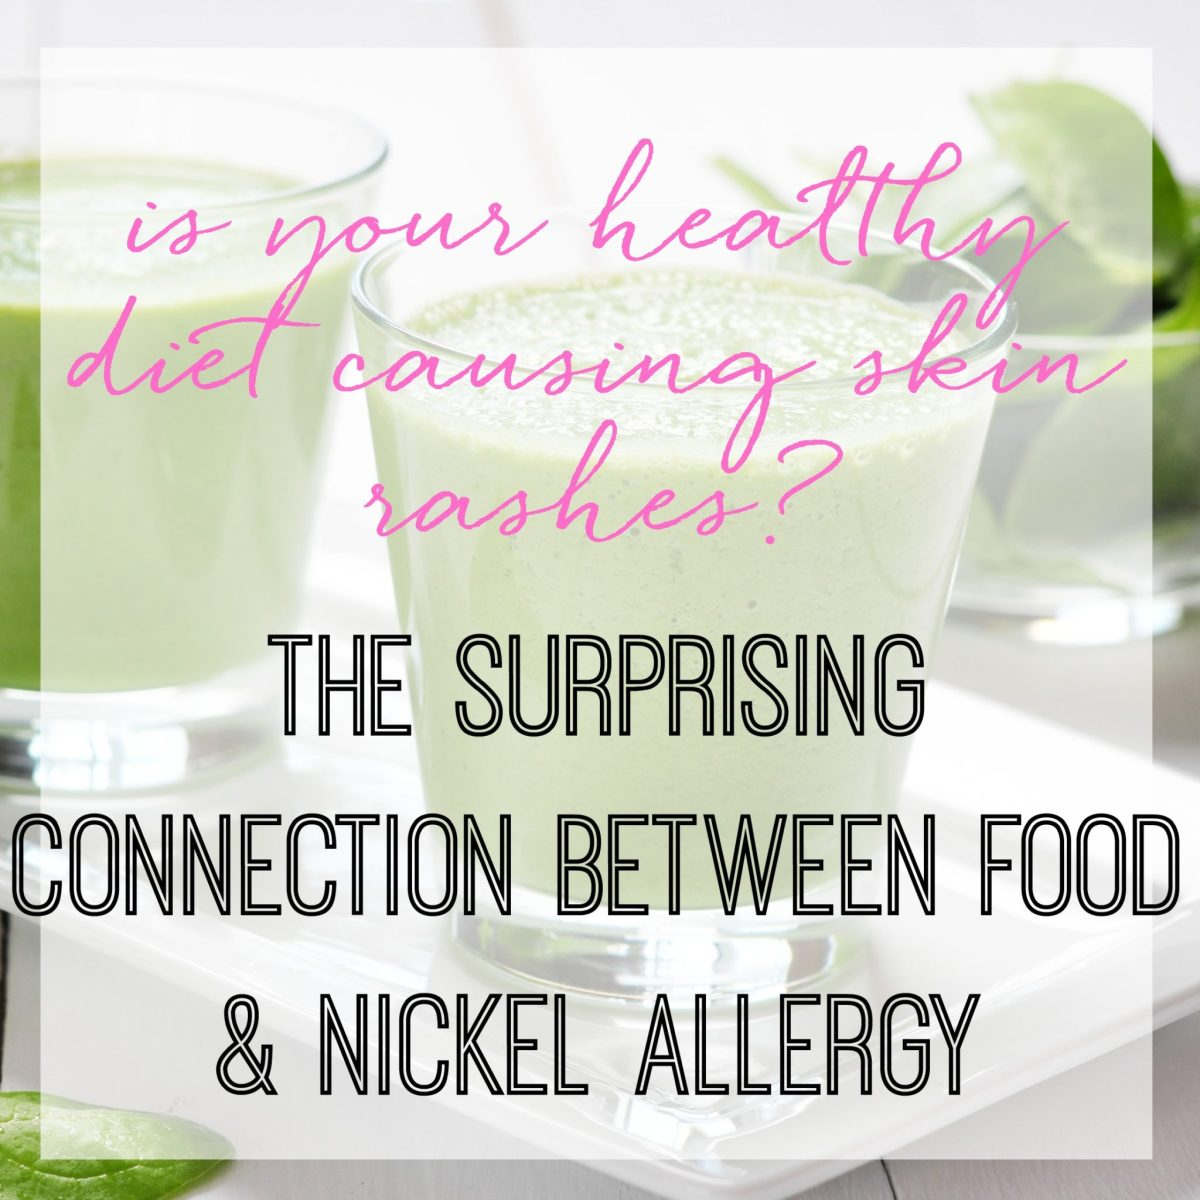 The Suprising Connection Between Nickel Allergy and Food